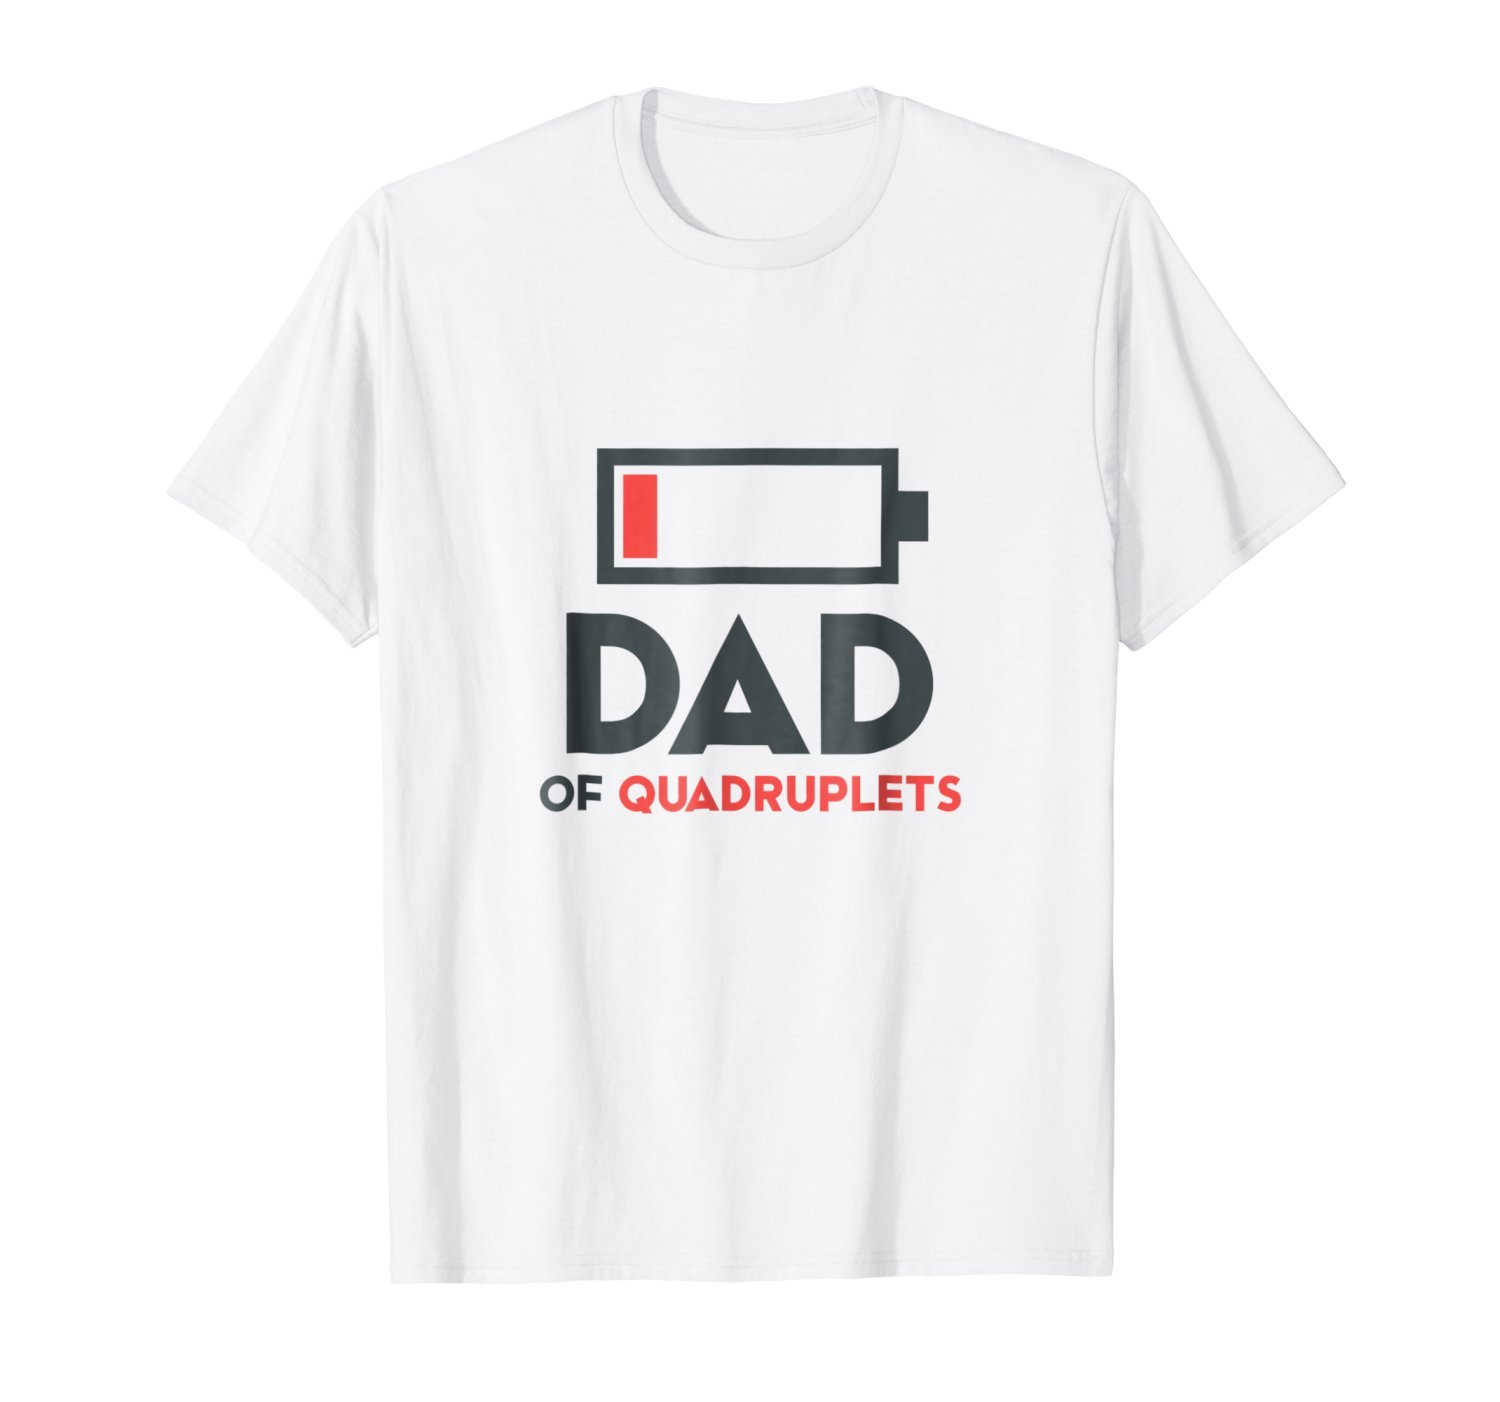 Fathers Day Gift Dad of Quadruplets Tshirt for Men Dad 1